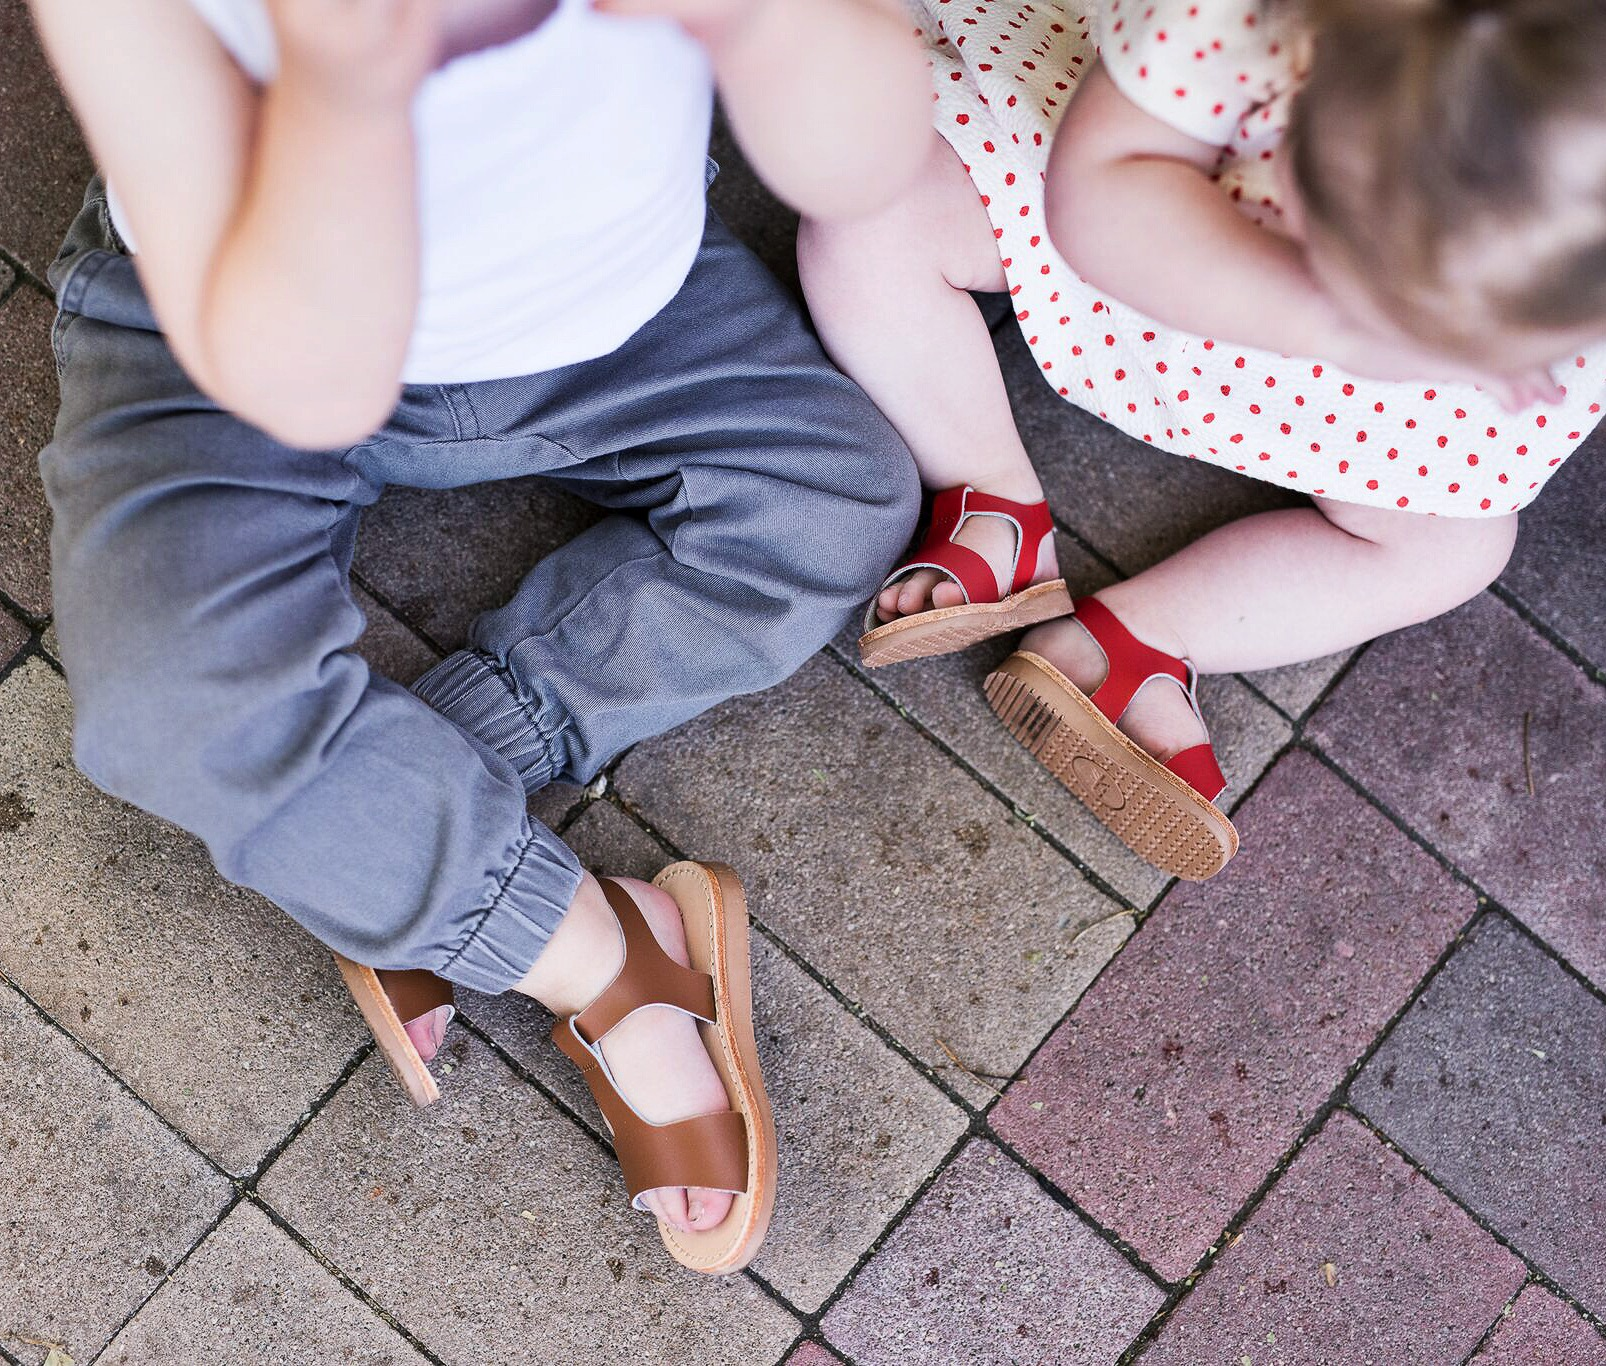 81699c6d4 FRESHLY PICKED SANDALS GIVEAWAY by San Francisco mom blogger For The Love